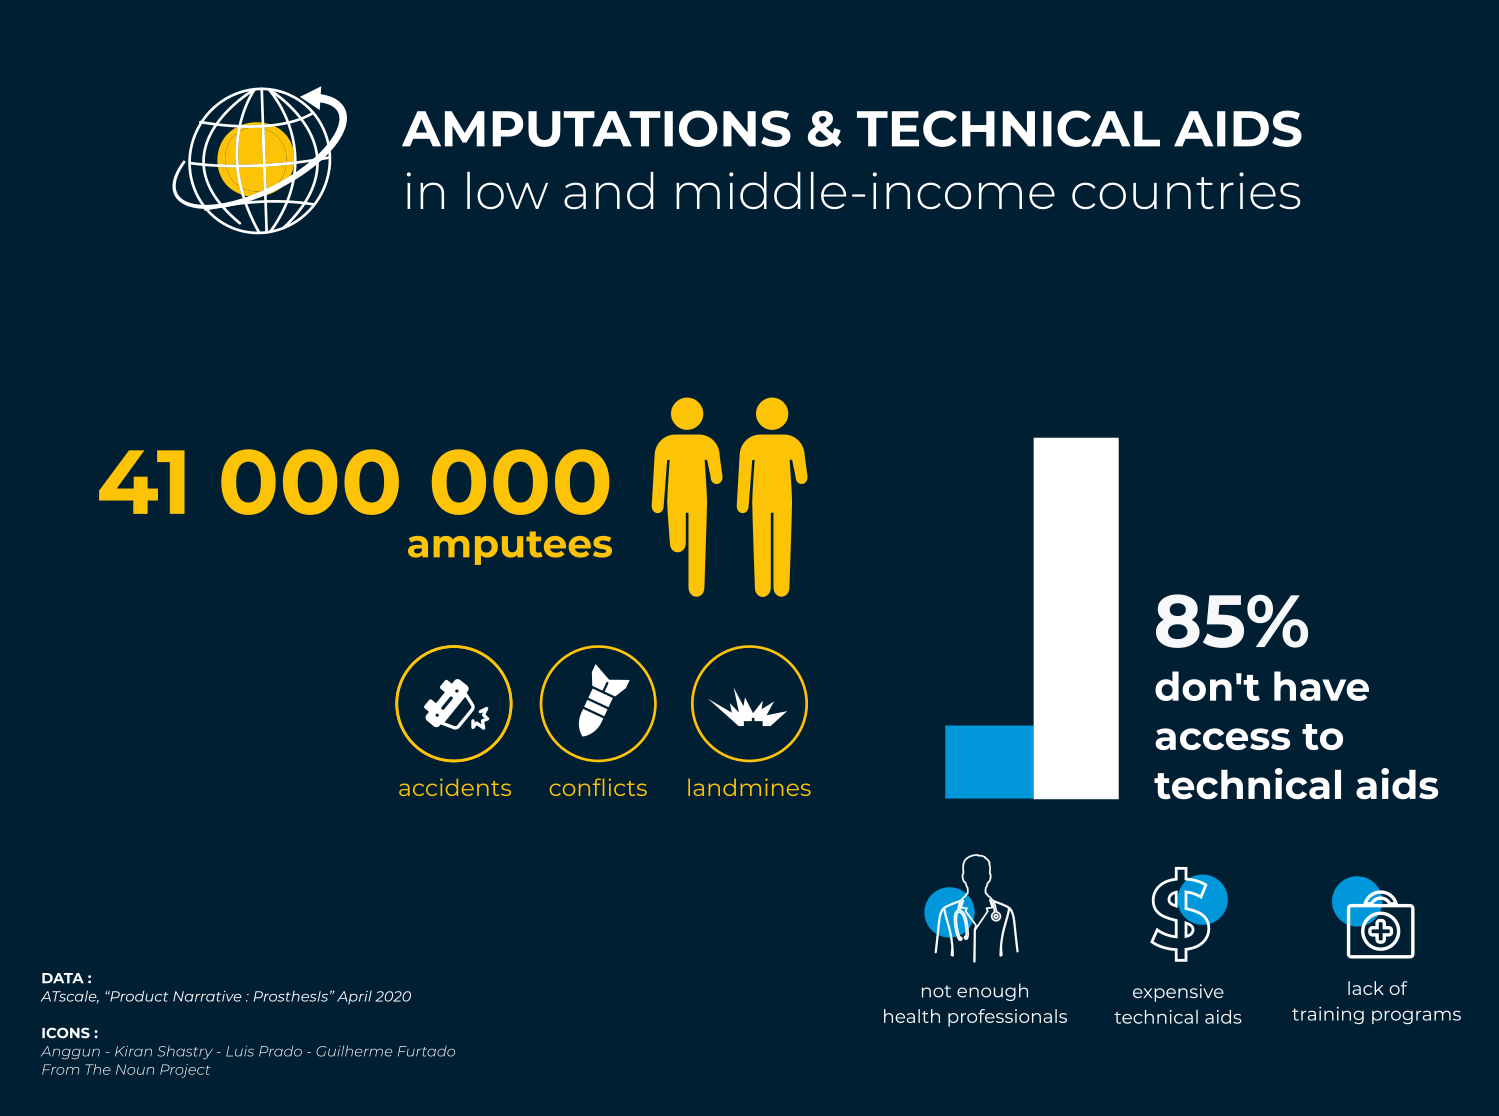 Amputations and technical aids in LMICs